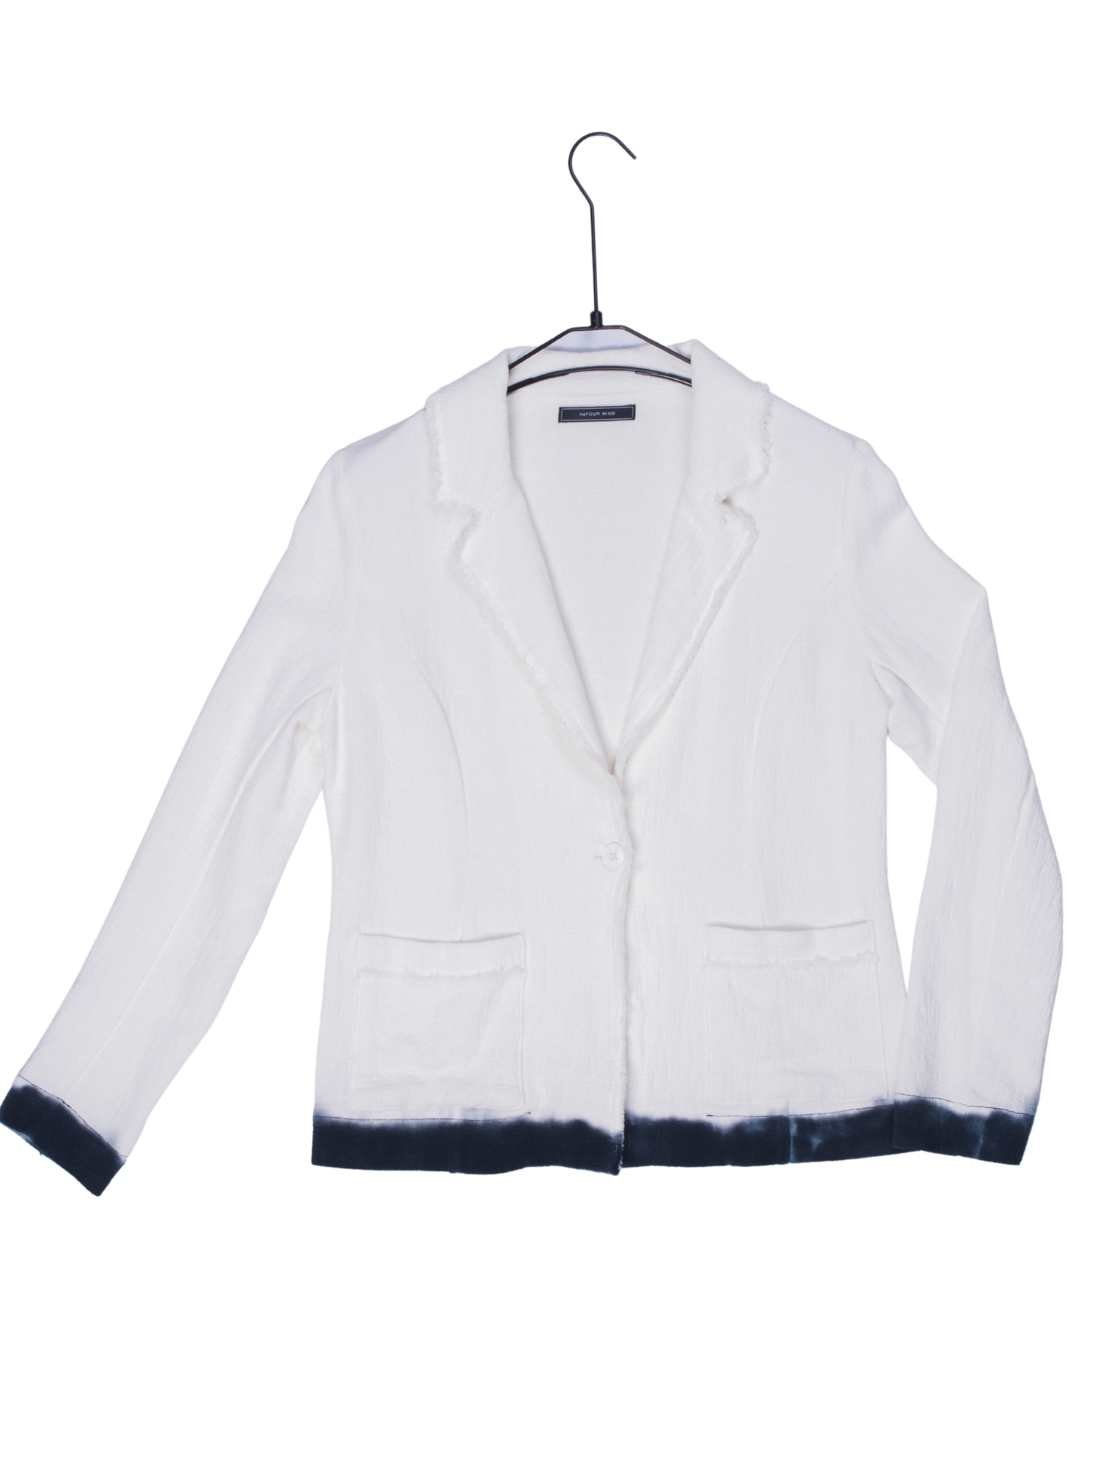 Ladies Heavy Cotton Linen Crepe Blazer Bottom with Dip Dying